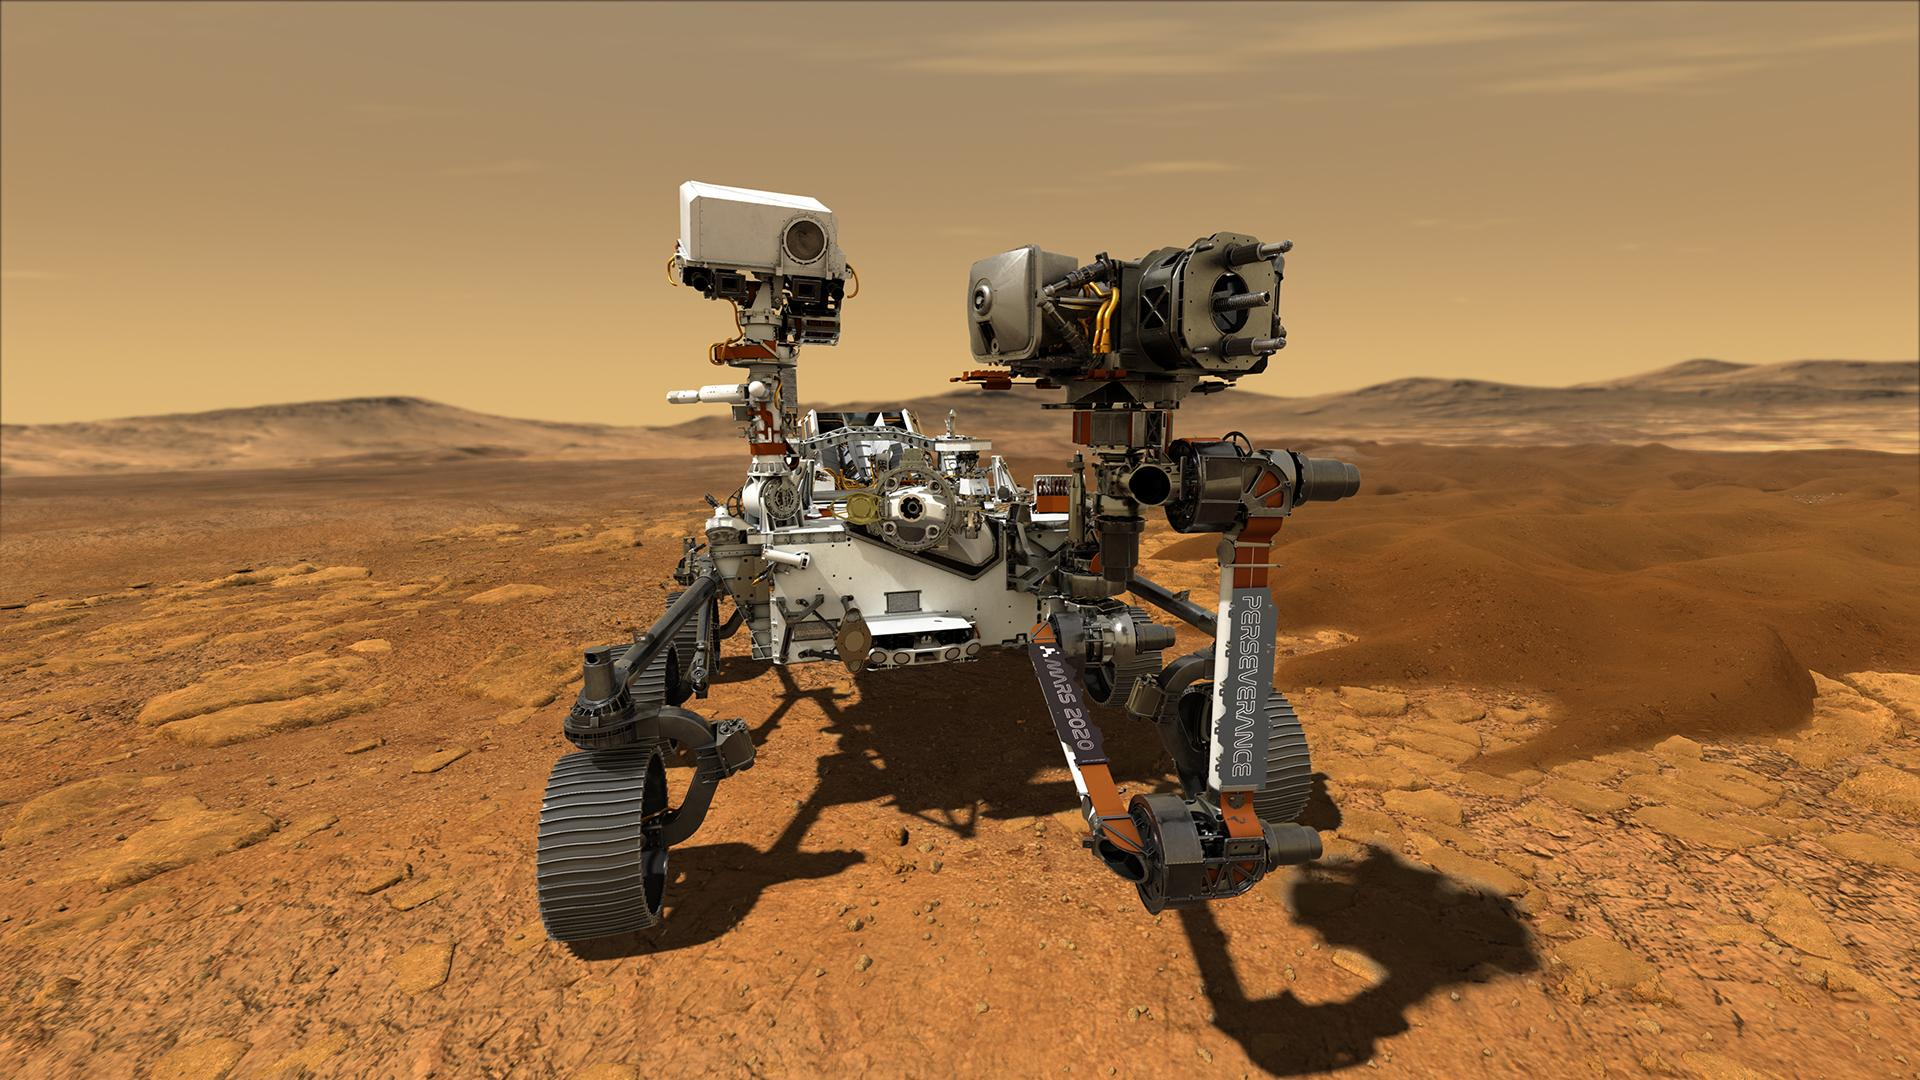 NASA's Mars 2020 Perseverance rover mission: Live updates | Space